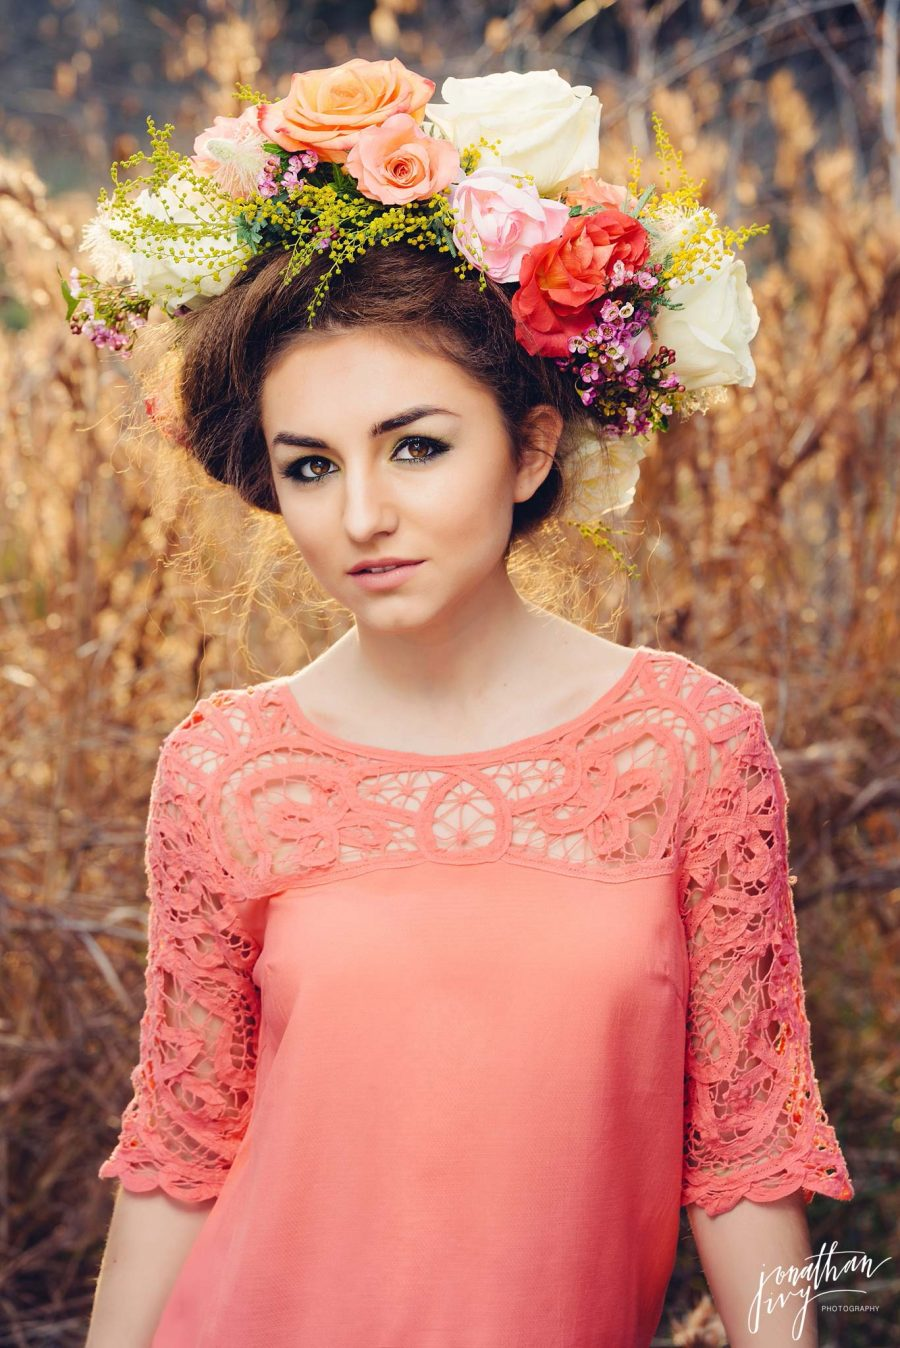 Floral Hair Crowns and Hair Pieces